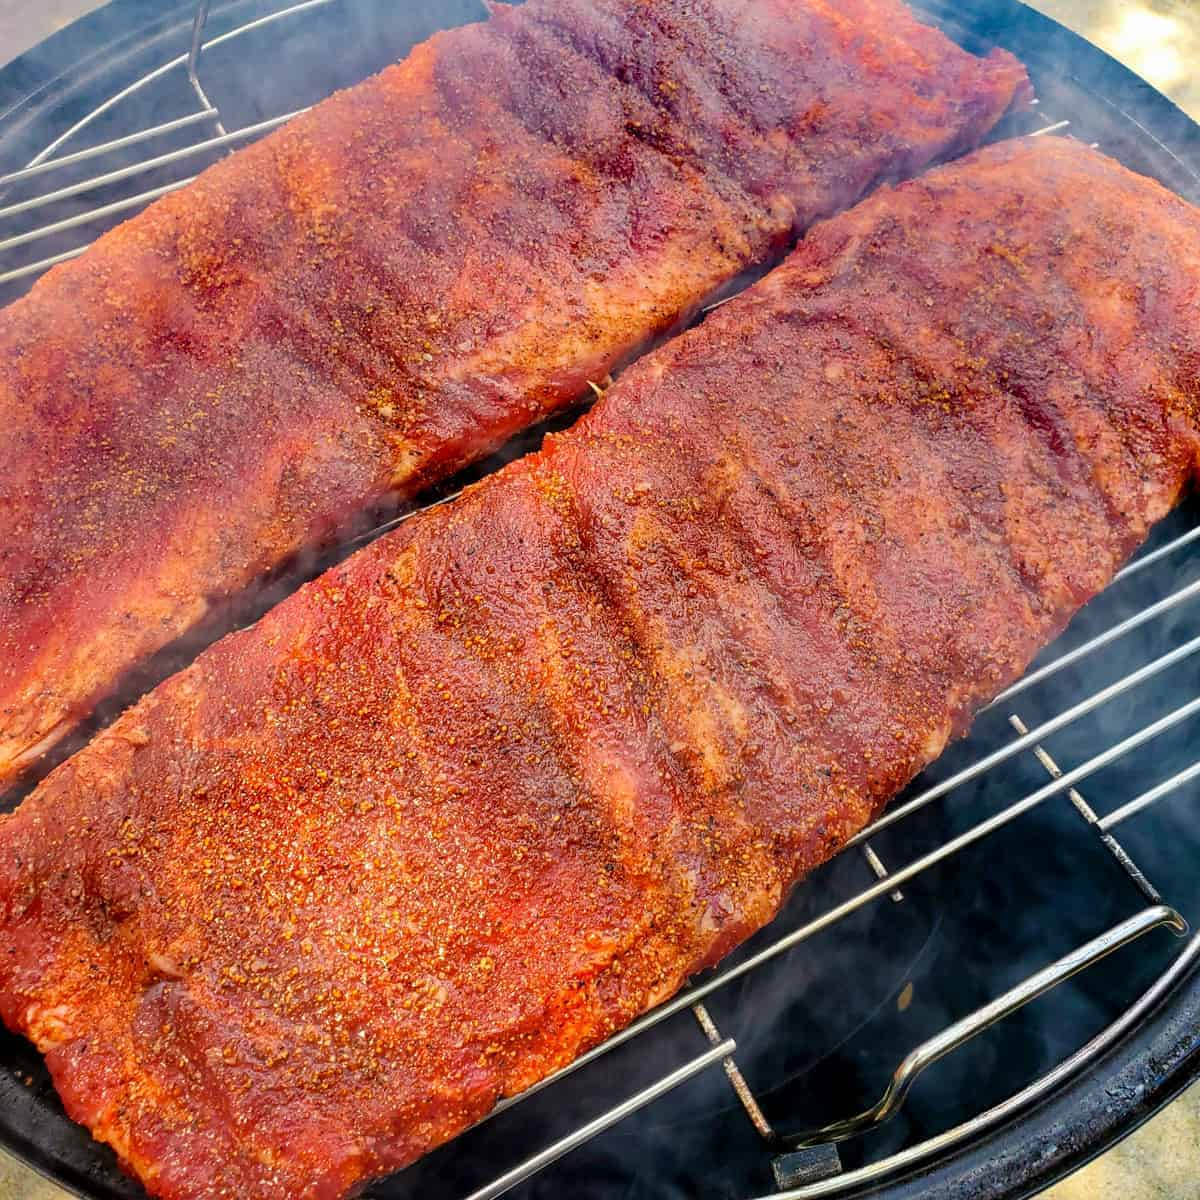 Seasoned spareribs shown on a smoker at the start of cooking